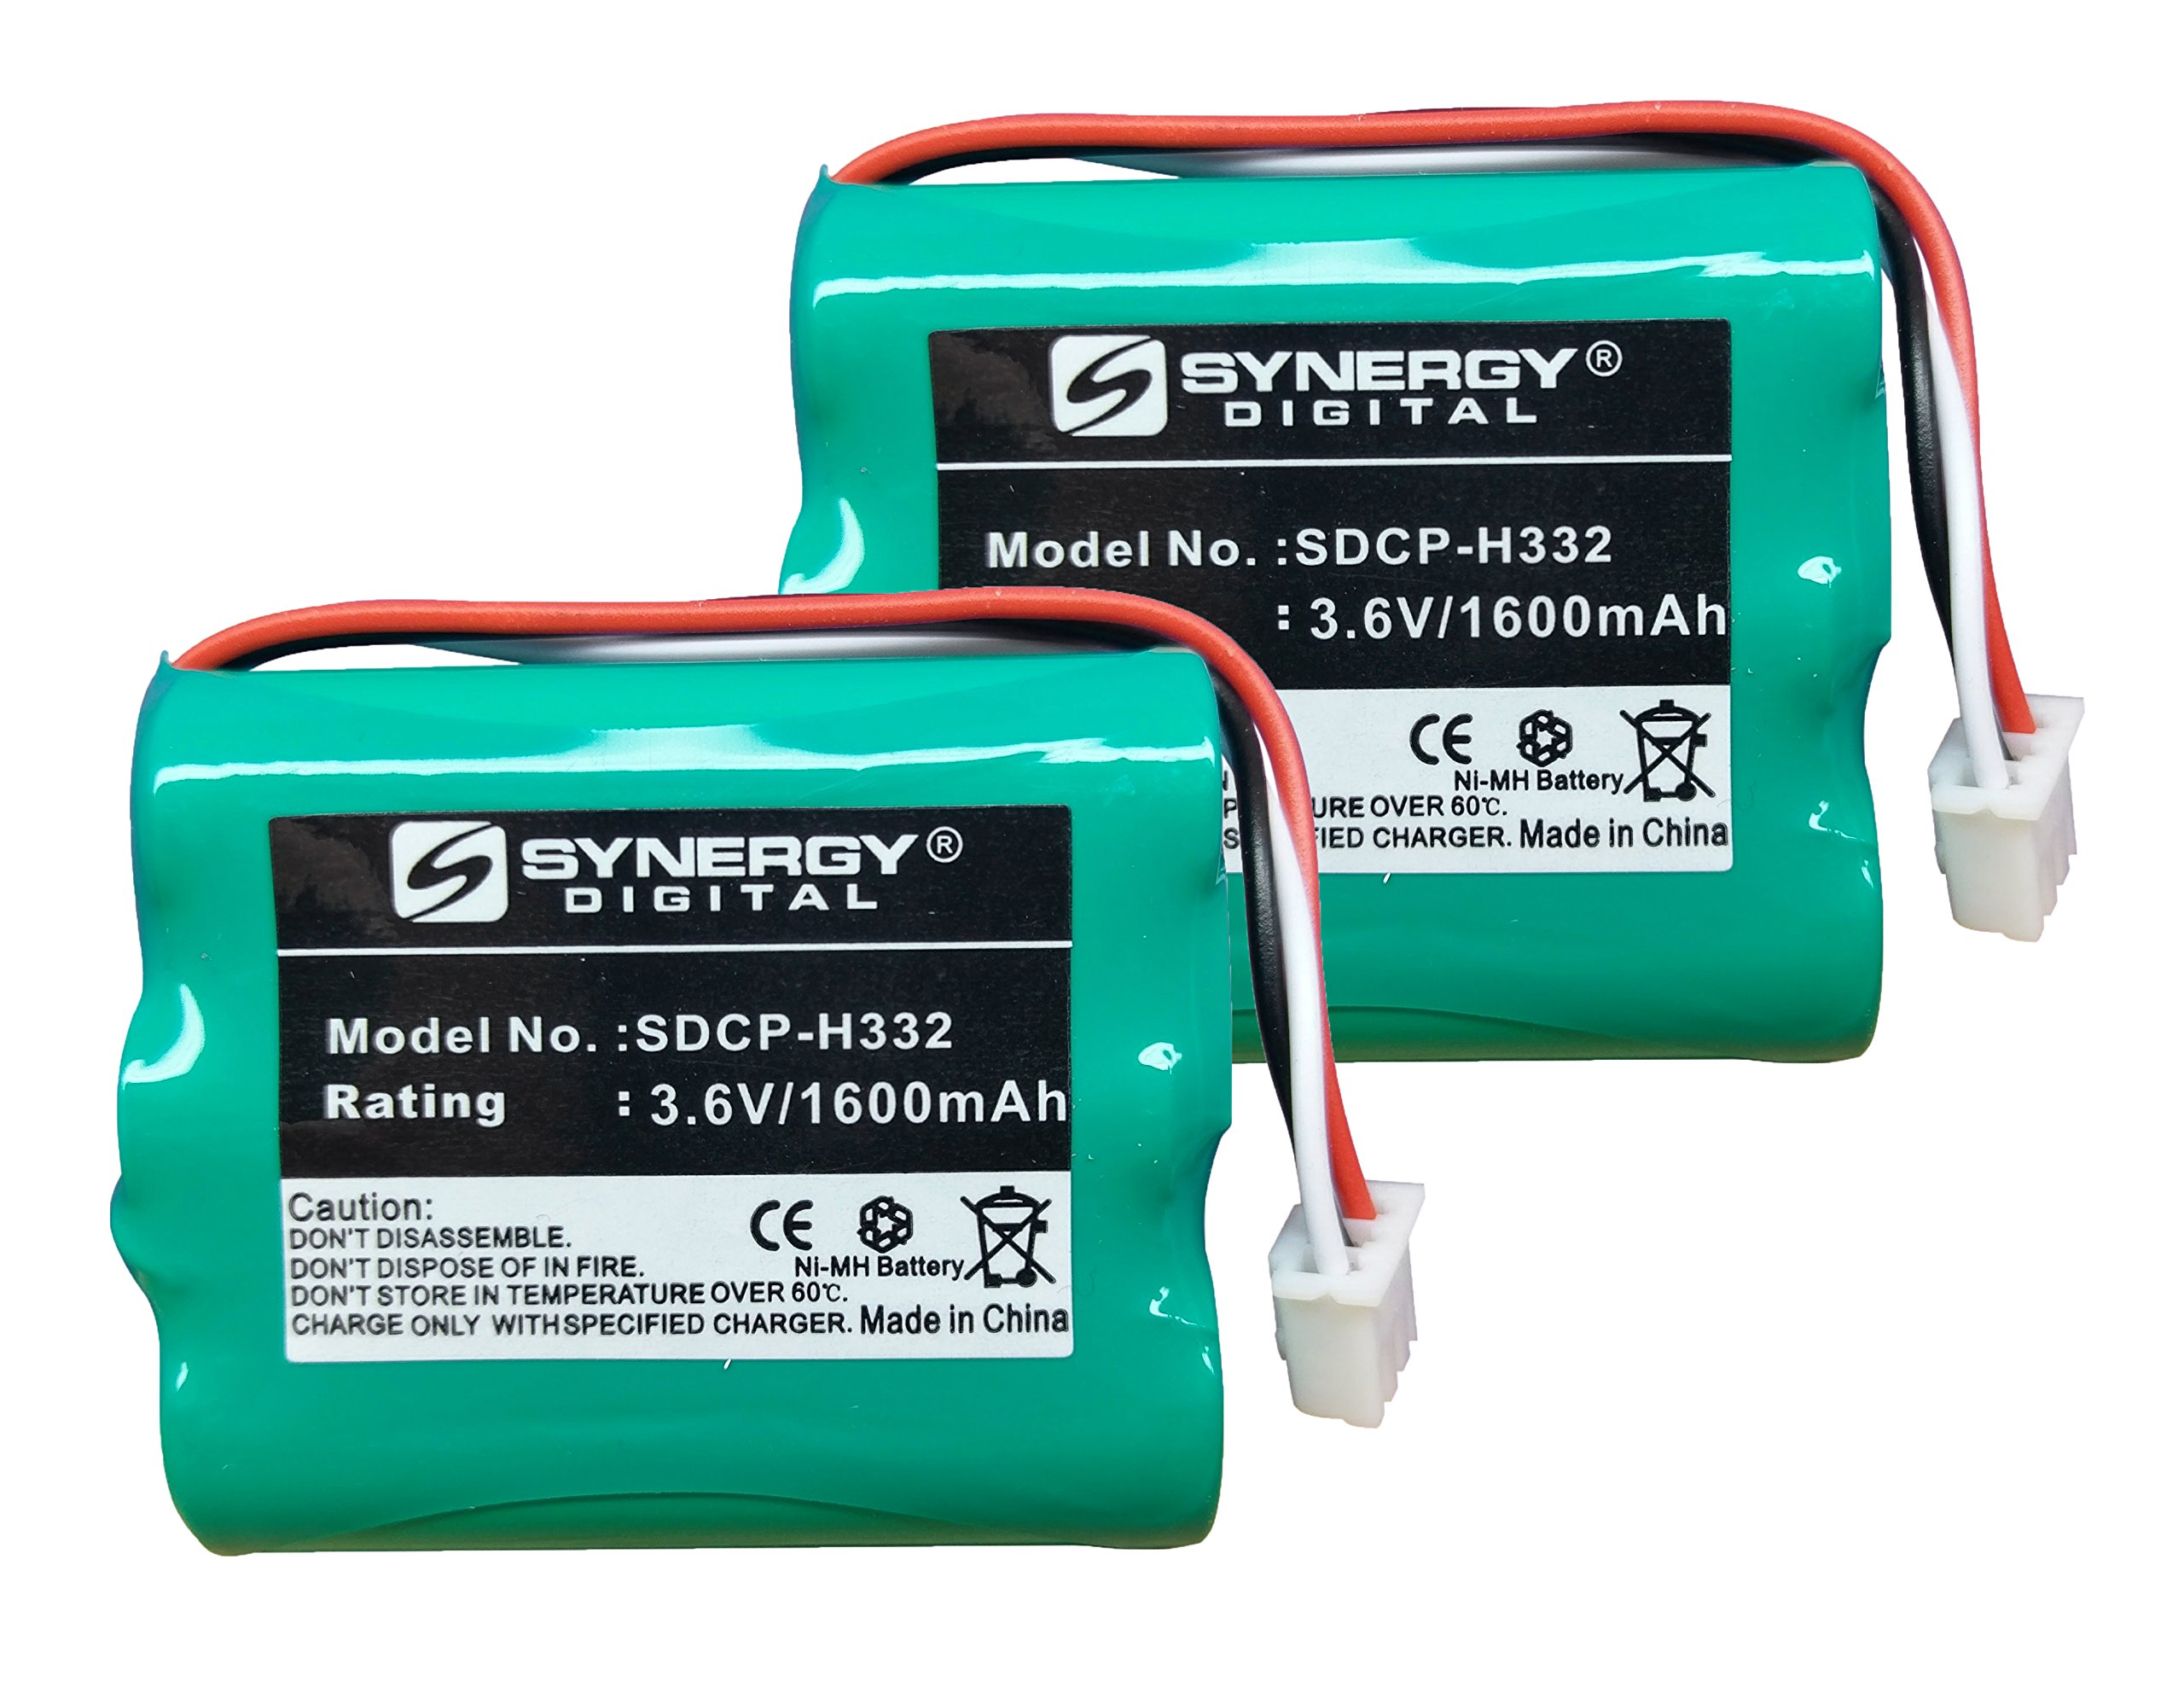 Huawei HOME PHONE CONNECT Cordless Phone Battery Combo-Pack includes: 2 x SDCP-H332 Batteries by Synergy Digital